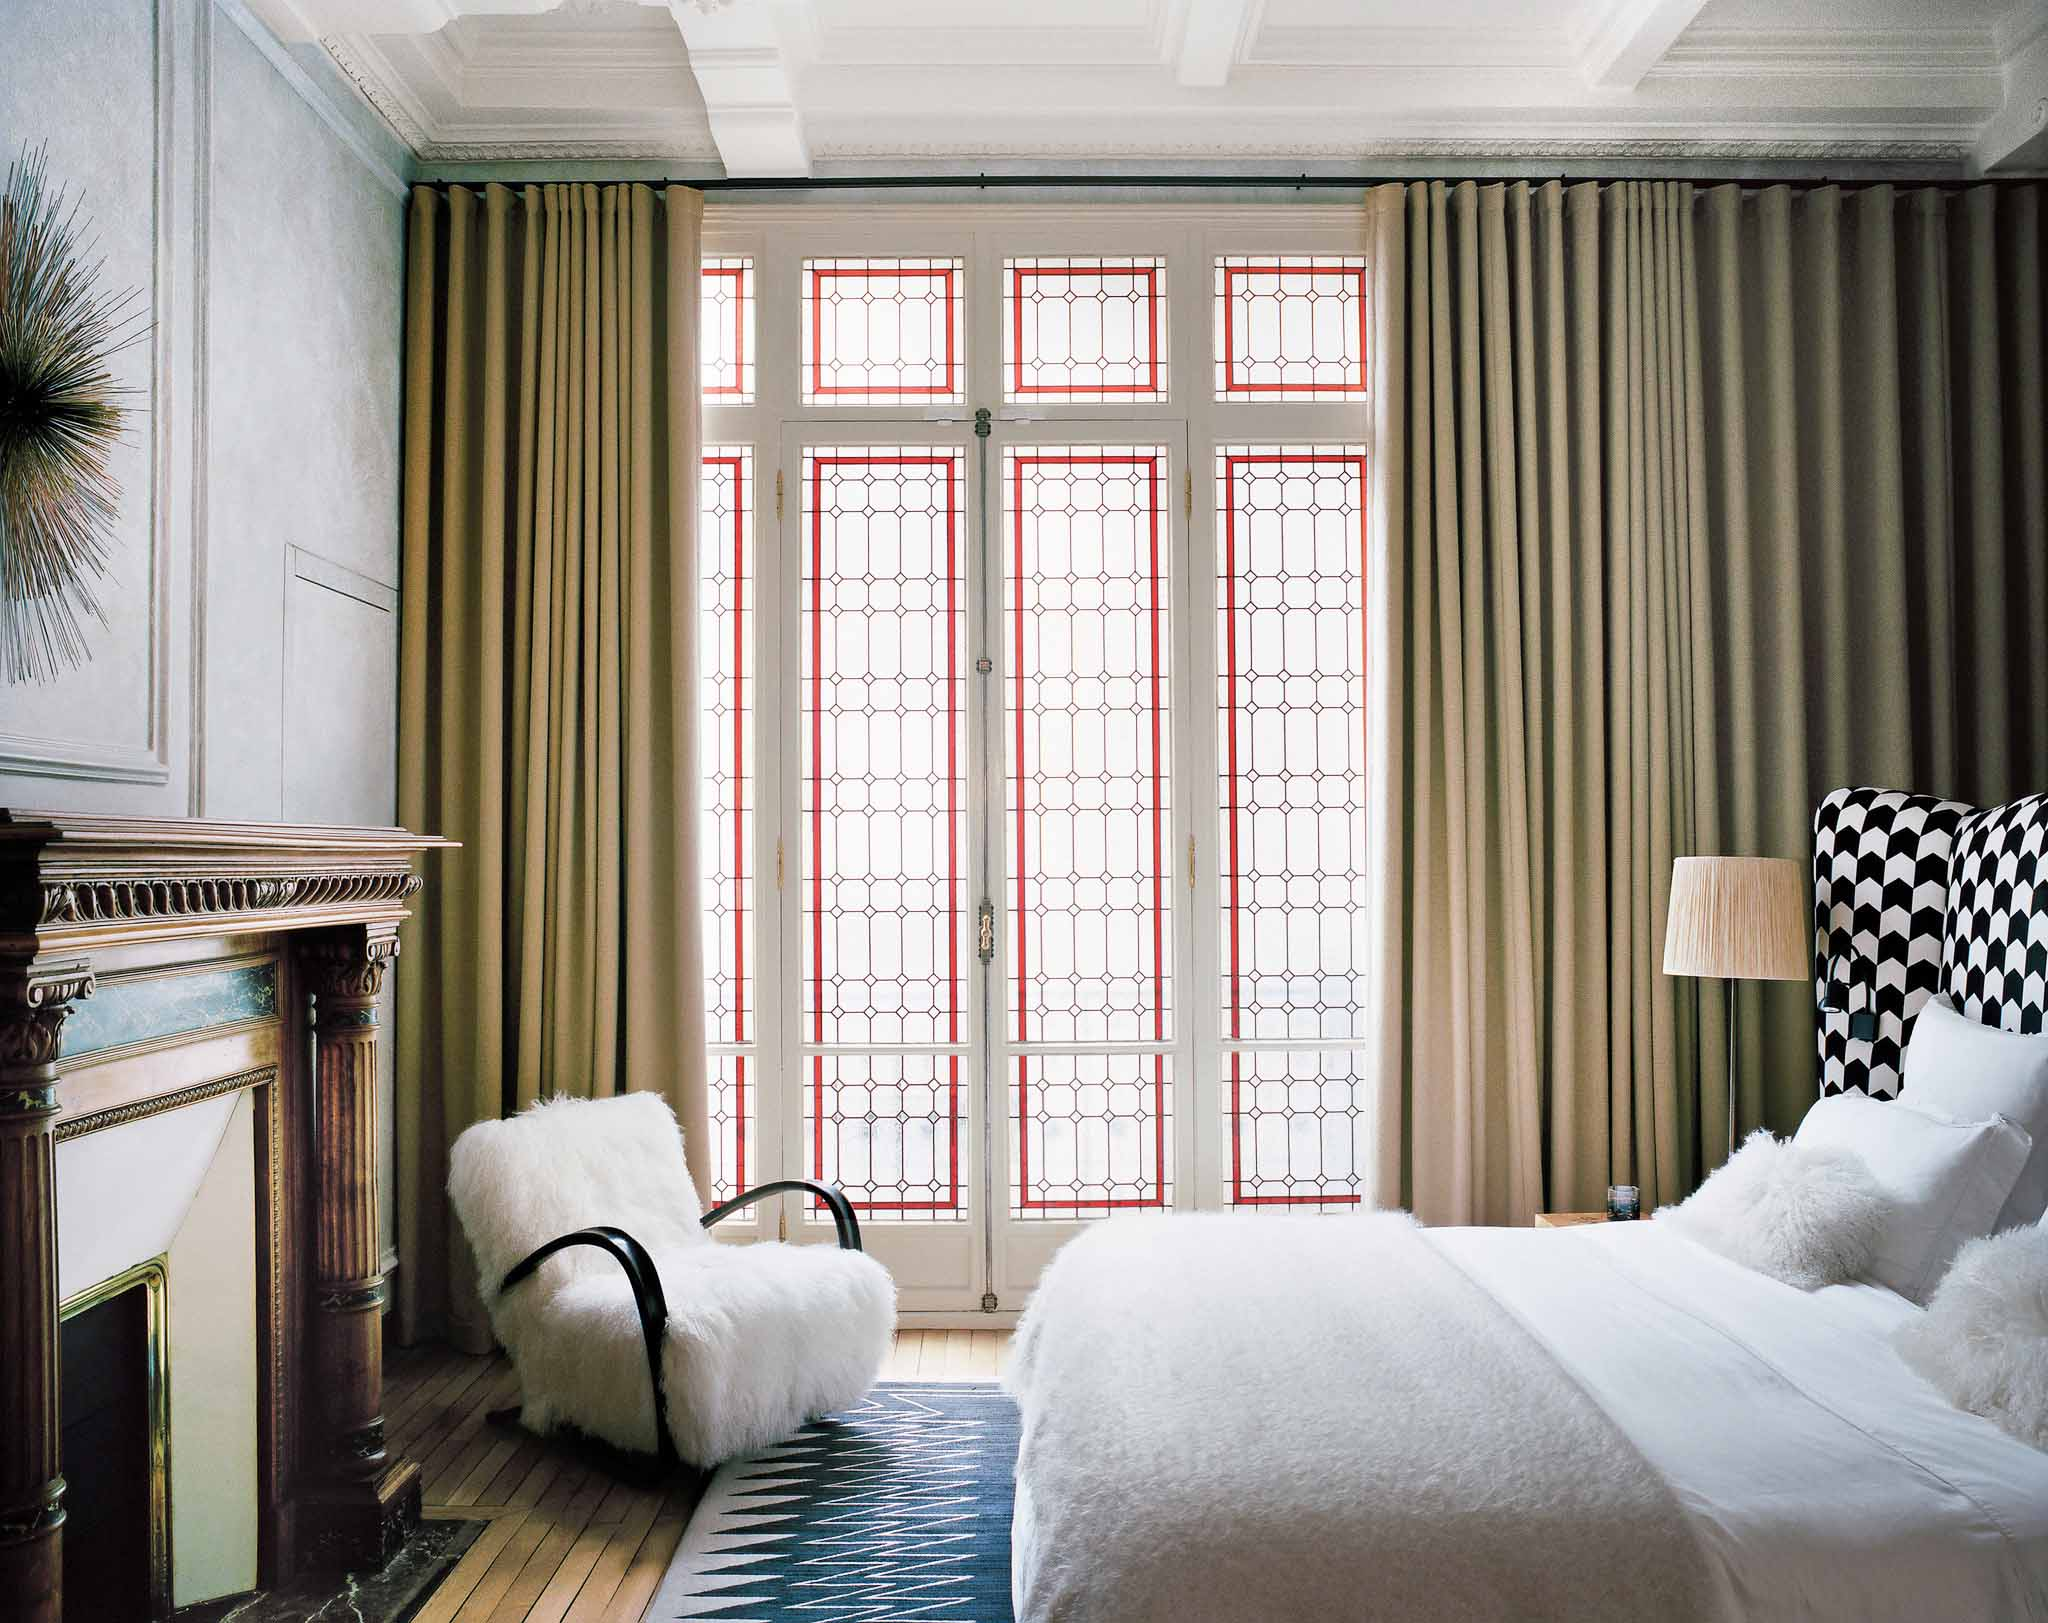 A modern bedroom by Studio KO with original stained-glass windows and graphic patterns on @thouswellblog